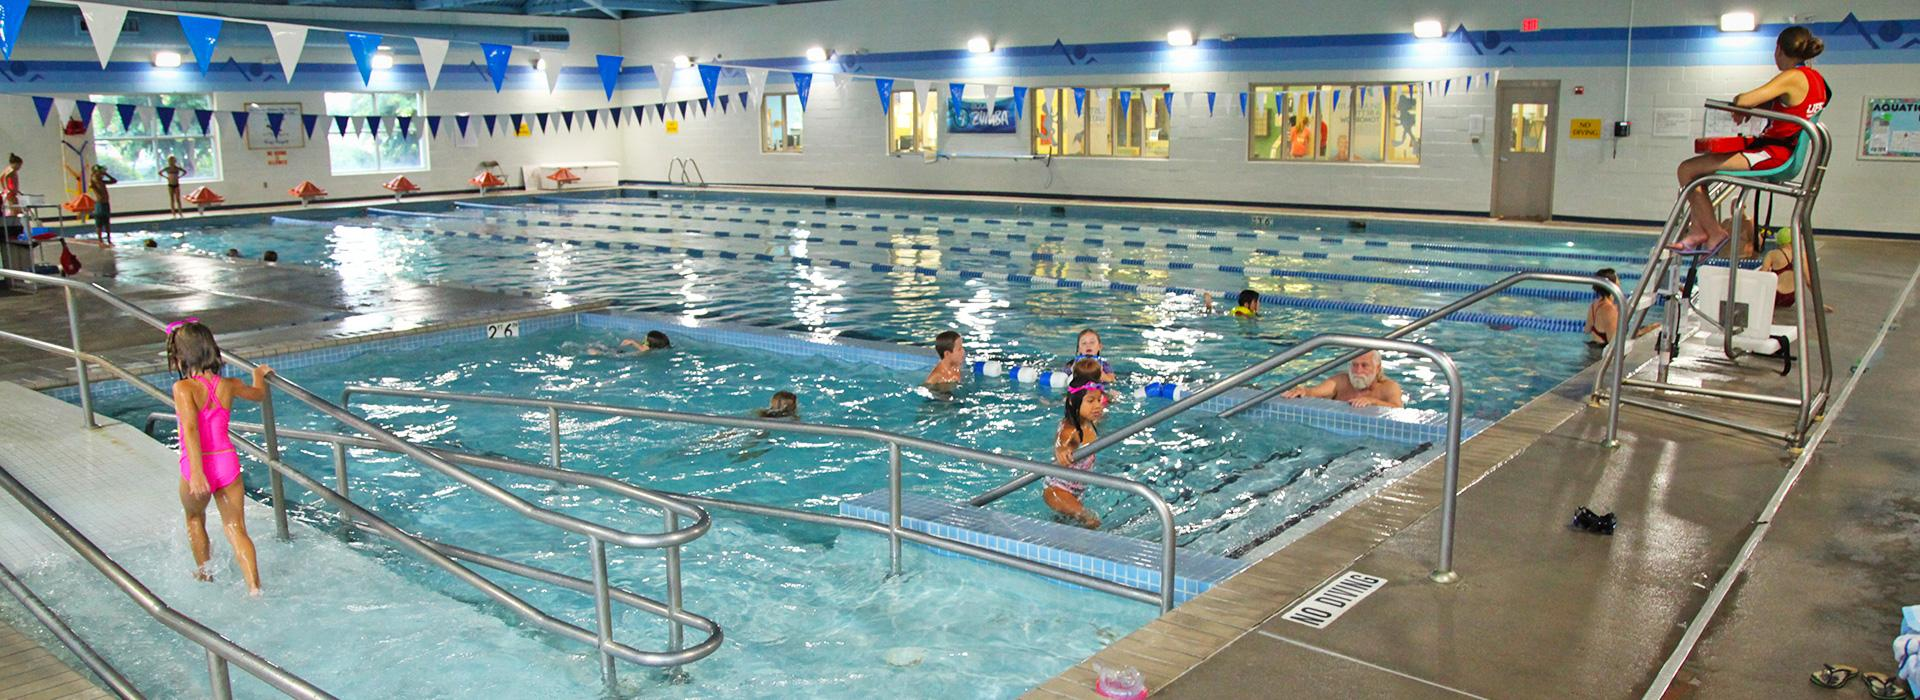 Obx Hotels With Indoor Pool